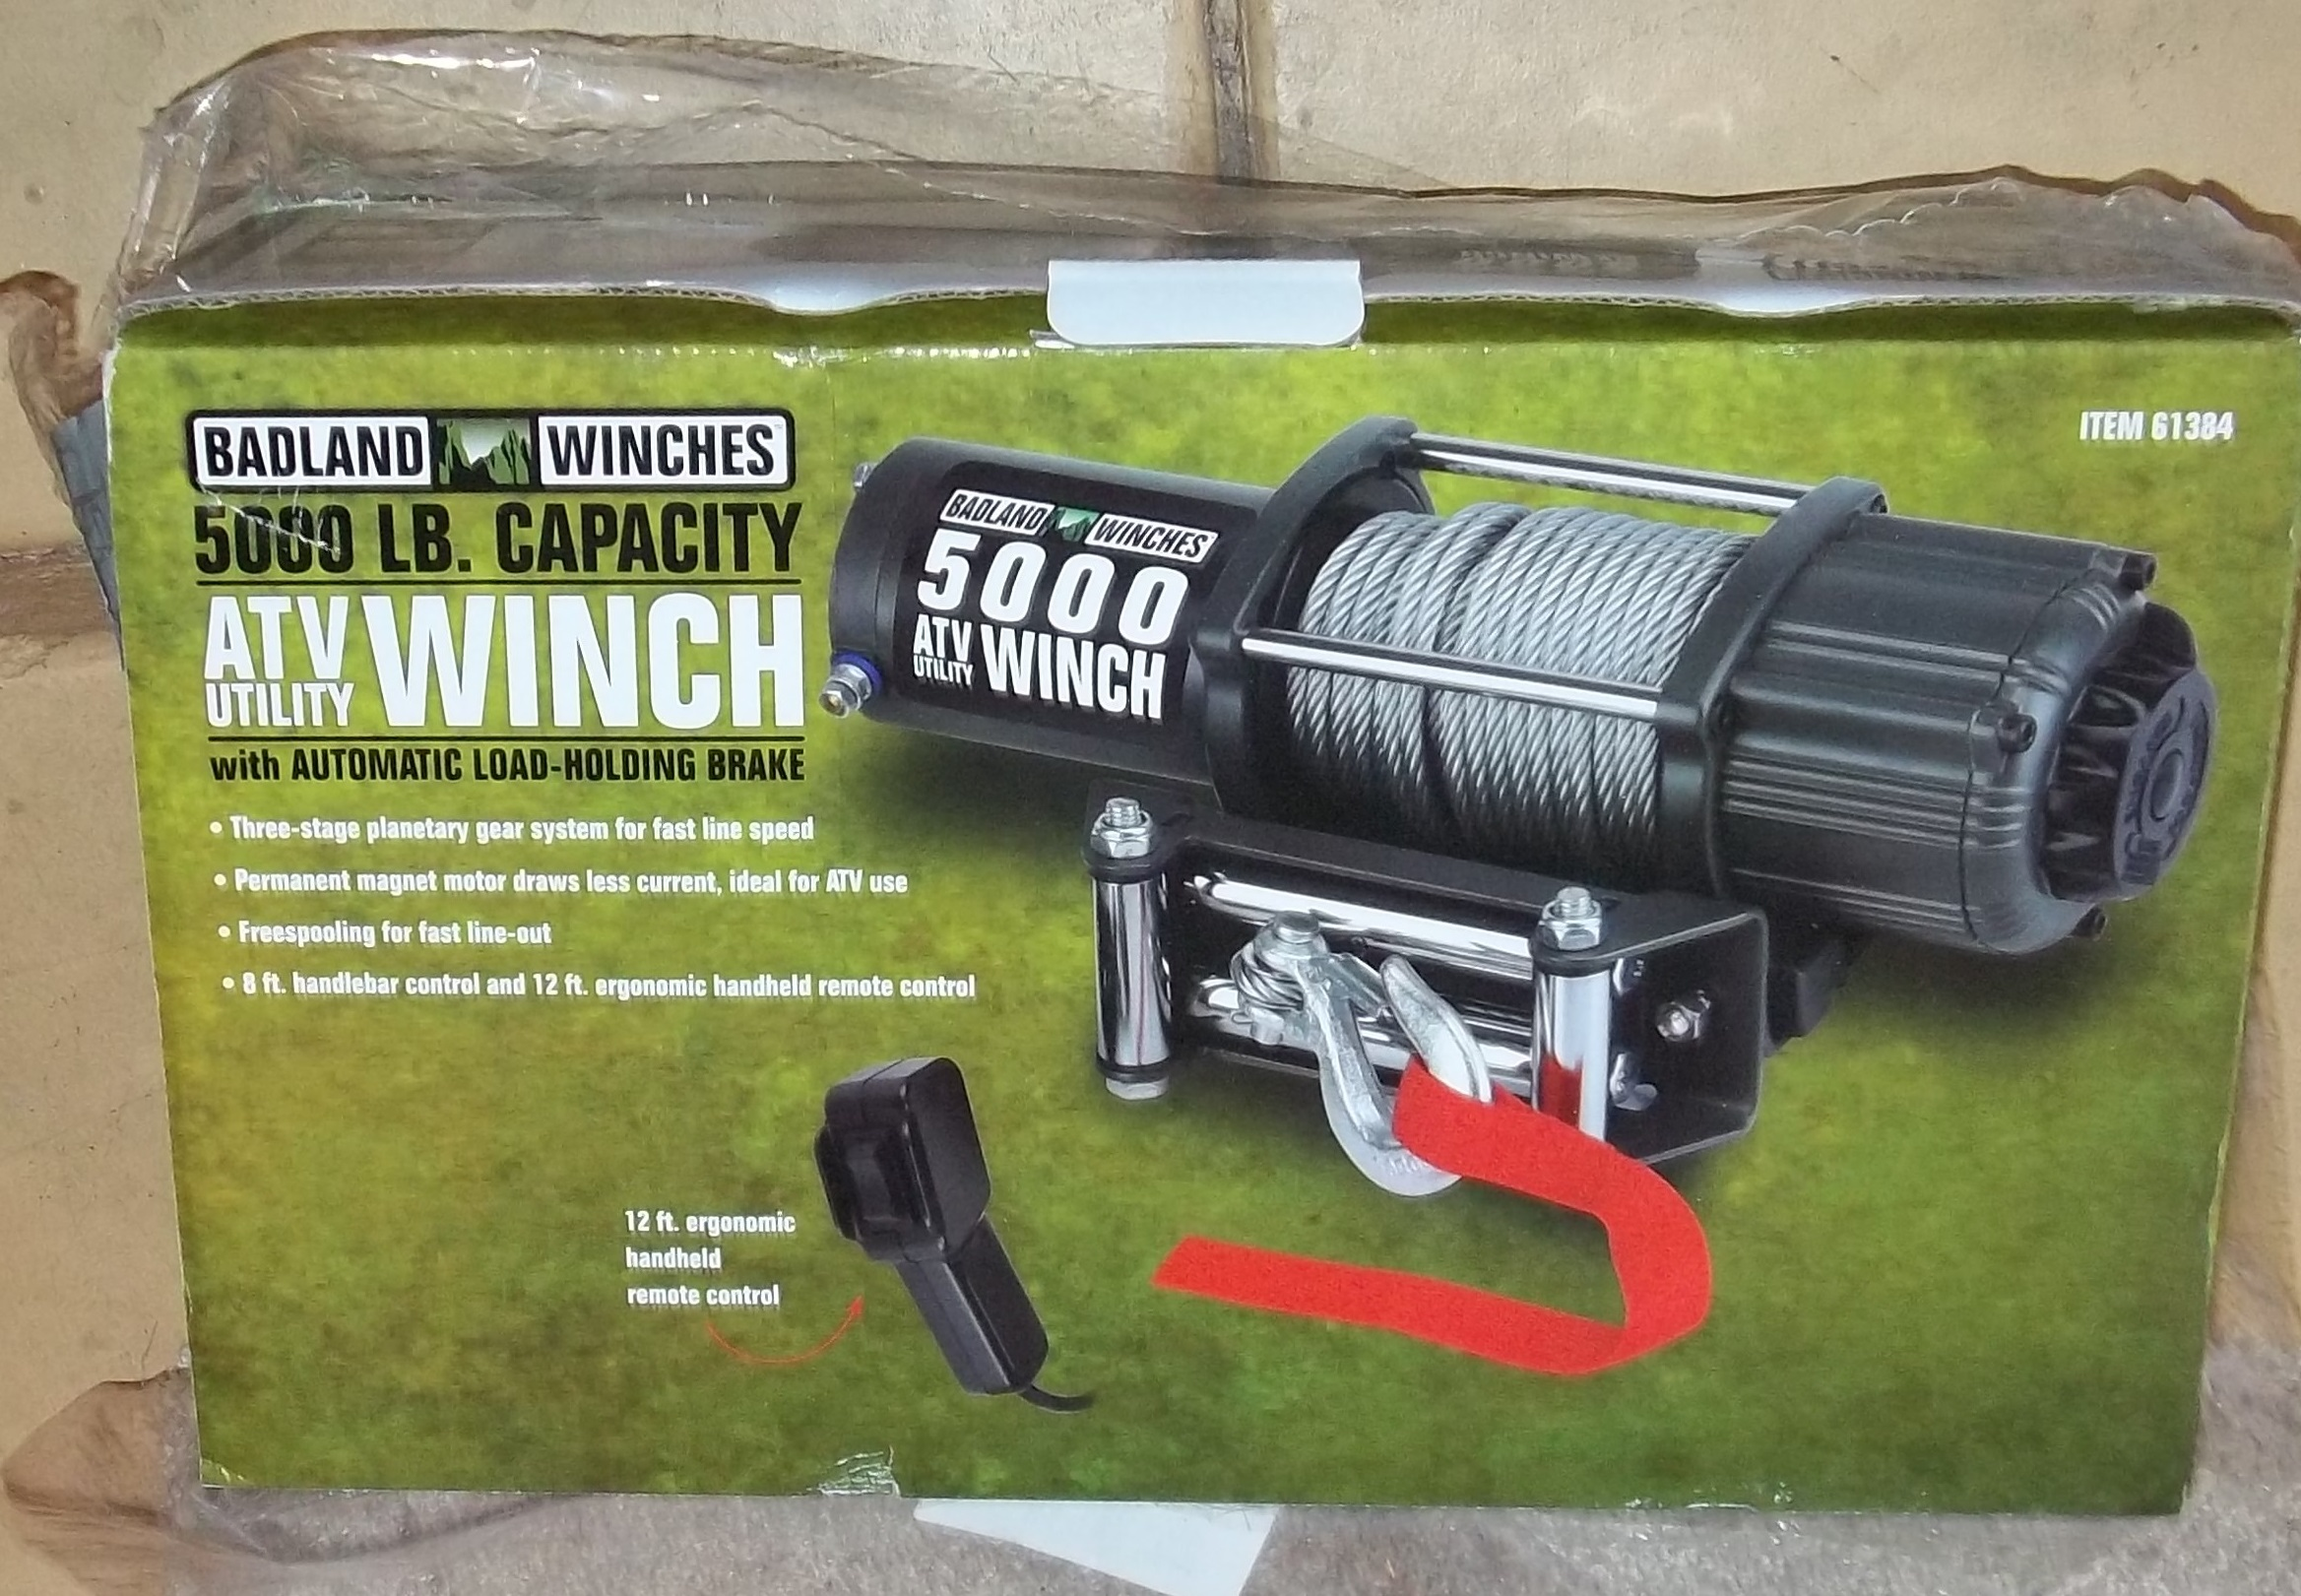 Badlands 5000lbs Winch Installation Review 12 Volt Electric Wiring Diagram Name 100 1522 Views 17654 Size 101